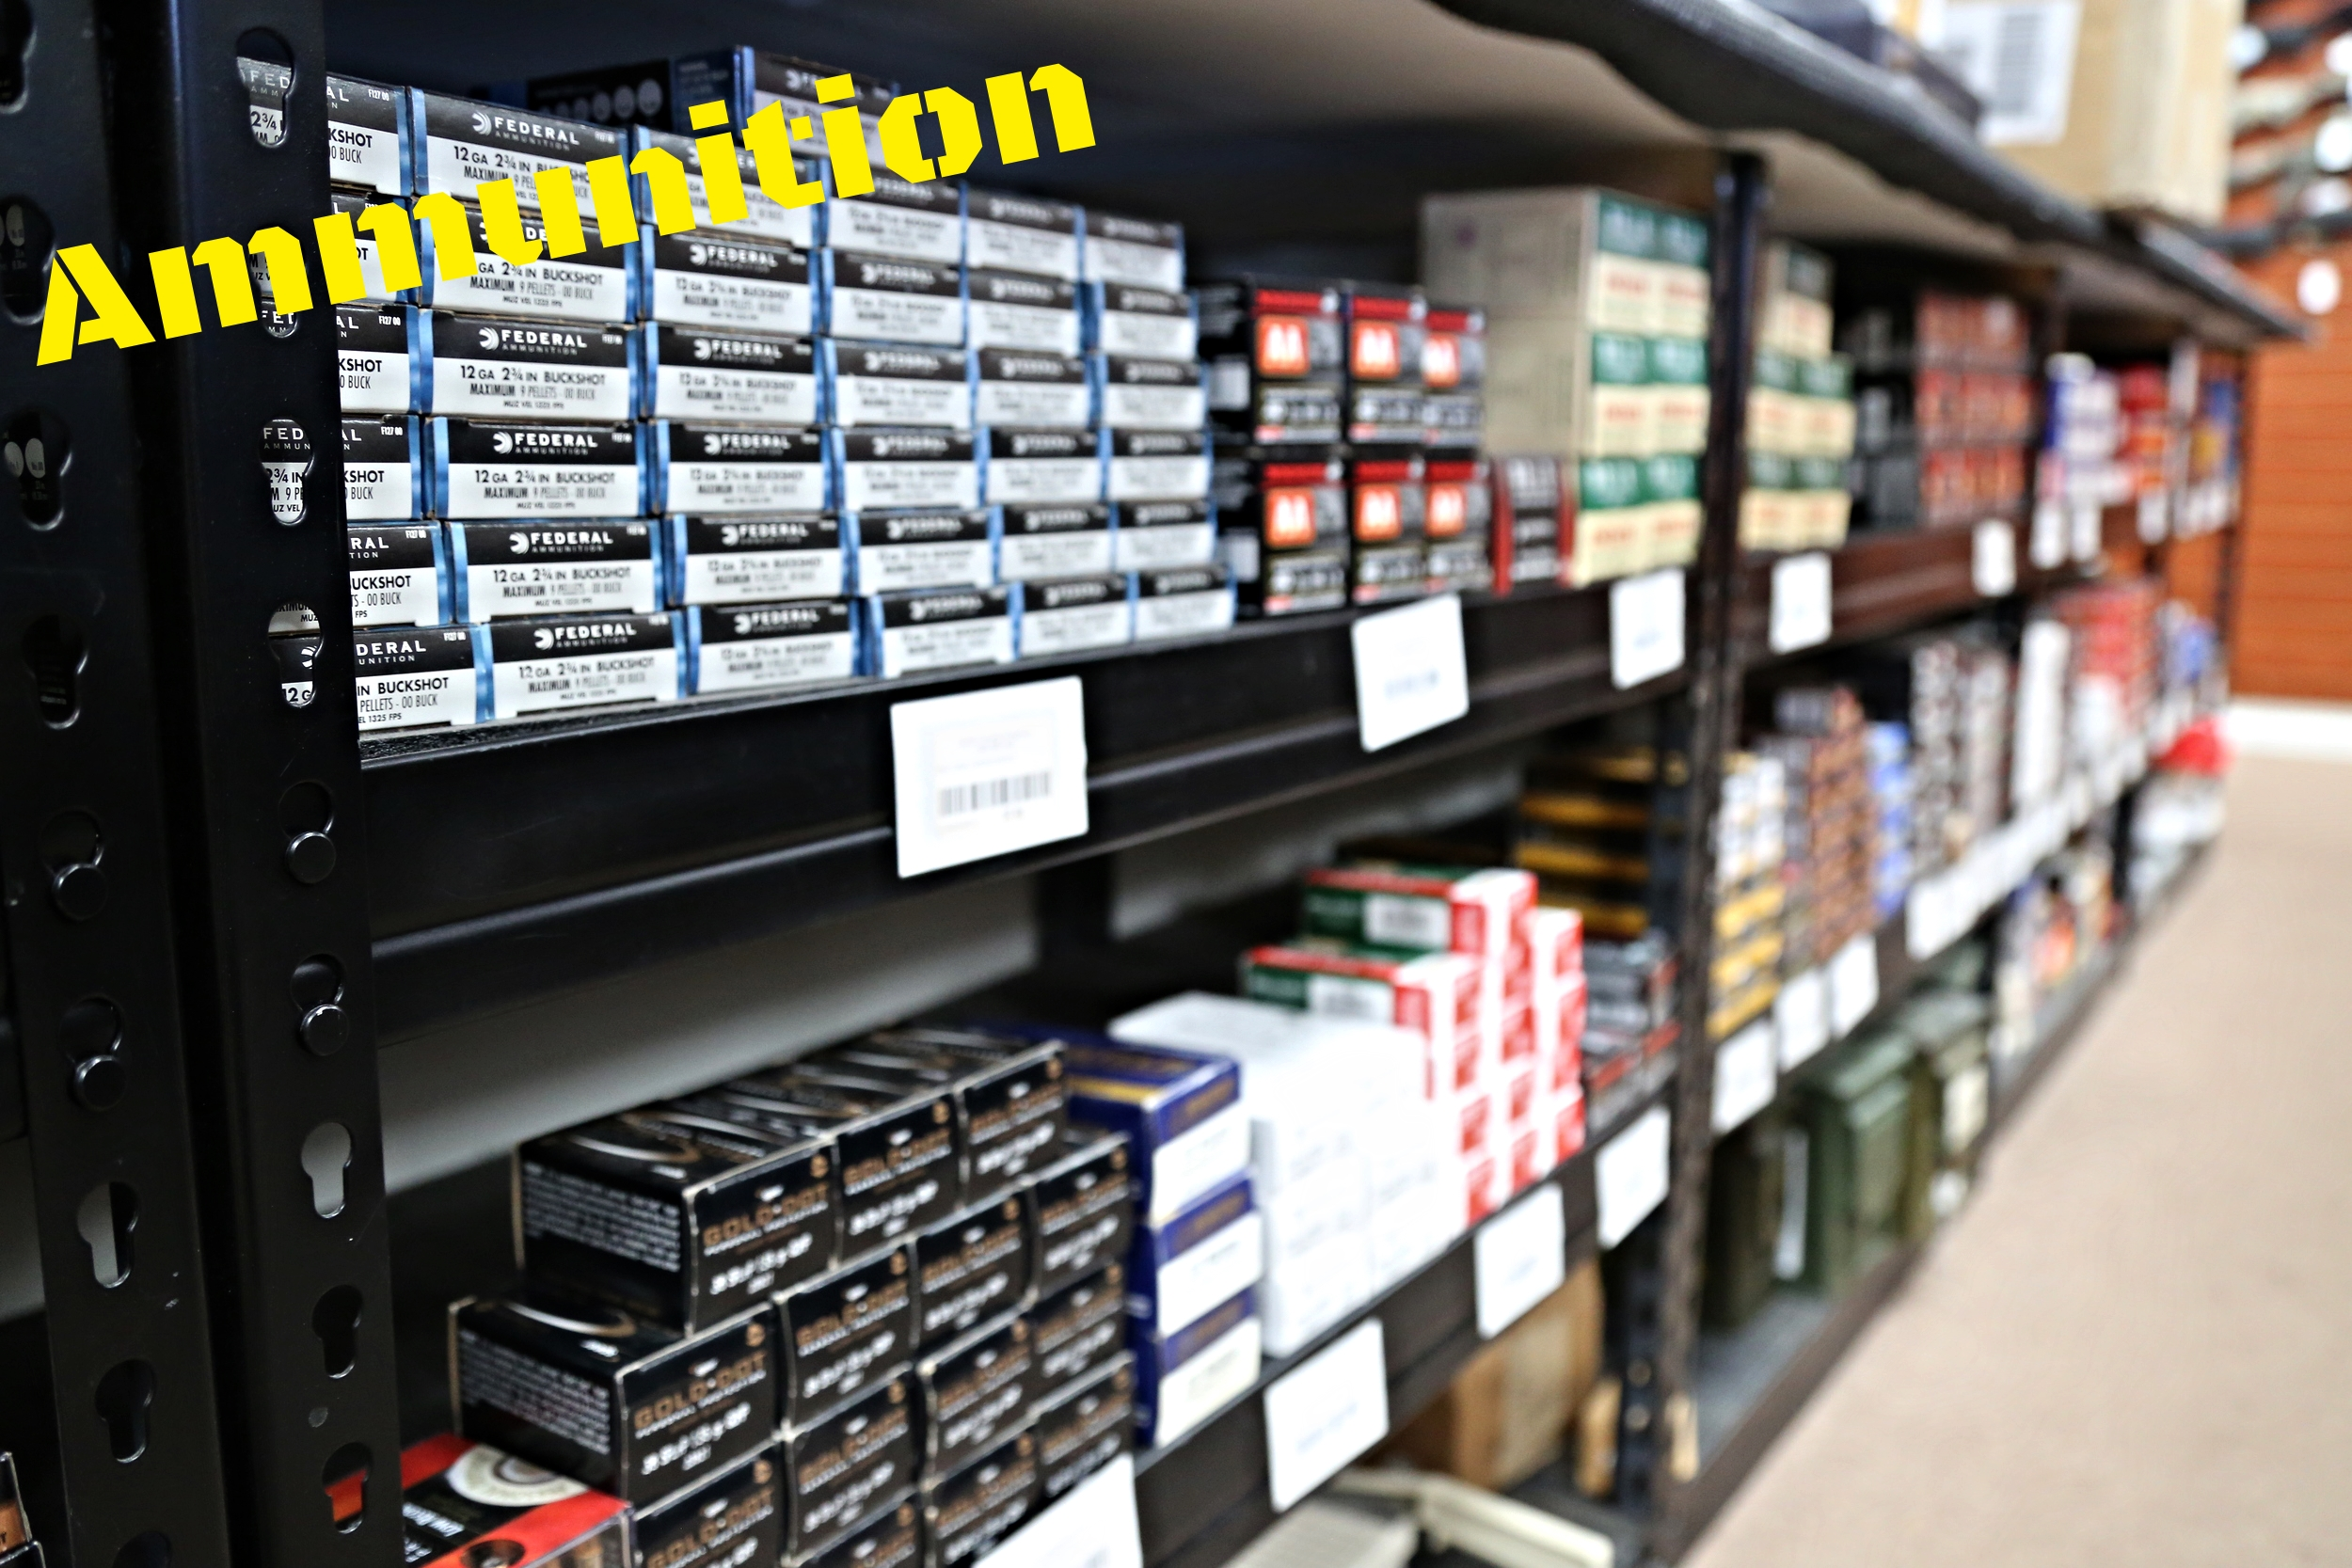 We have a very wide variety of common caliber ammunition in stock at all times, and are always receiving new shipments of hard to find calibers as well.  From .22 LR all the way up to .338 Lapua, you will find both rifle and handgun calibers here at the shop.  We typically have the following brands on hand: -Federal -Hornady -Remington -Winchester -PMC -Magtech -Sellier & Bellot -Estate -TulAmmo -Sig Sauer -Speer -FN  and many more!